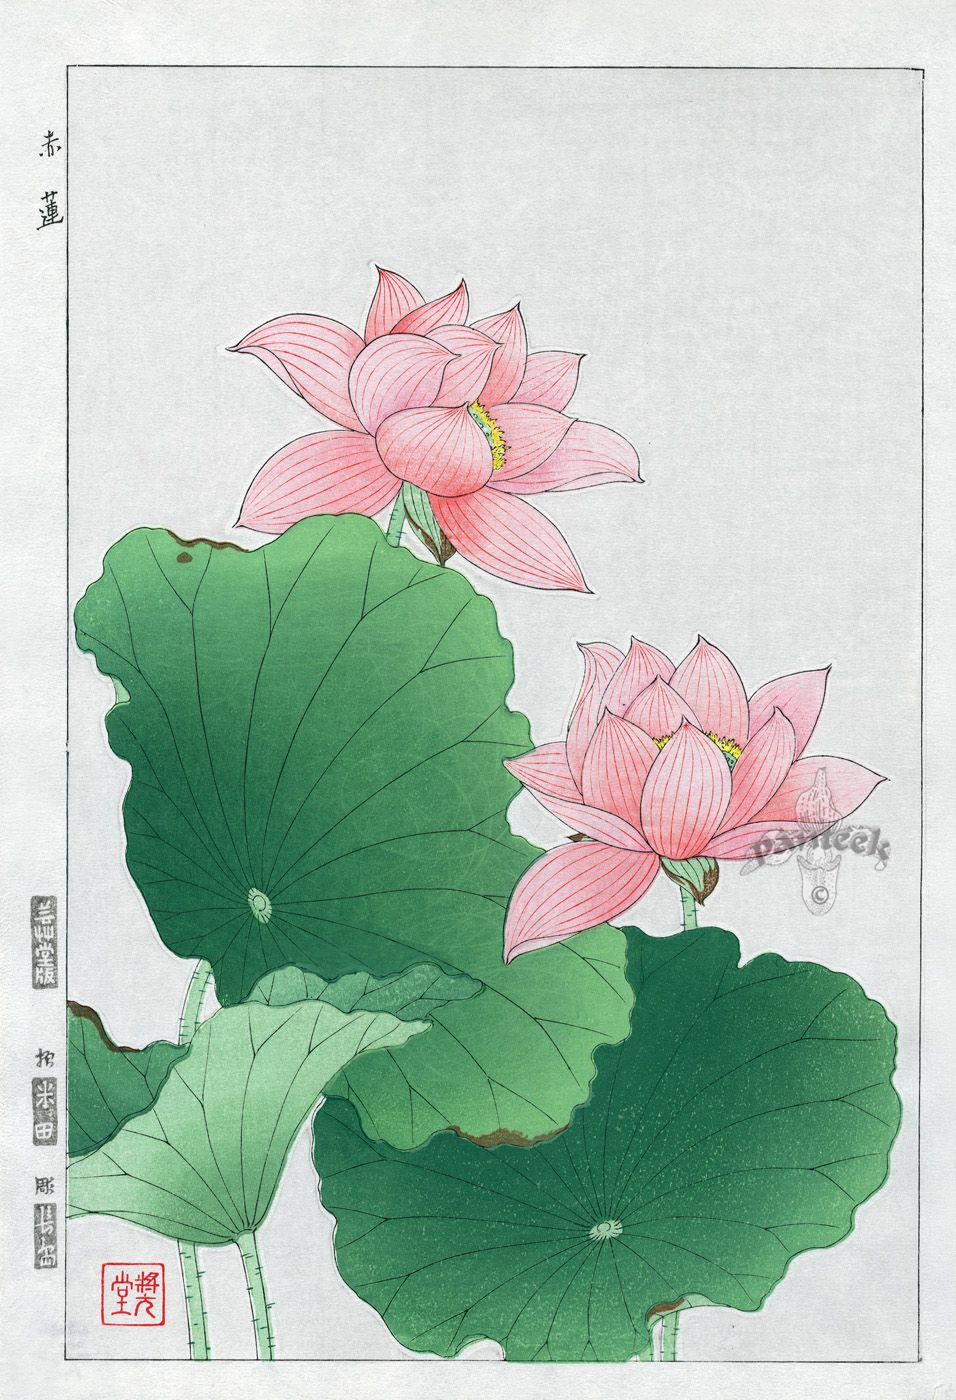 Water lily flower coloring pages - Water Lily From Shodo Kawarazaki Spring Flower Japanese Woodblock Prints